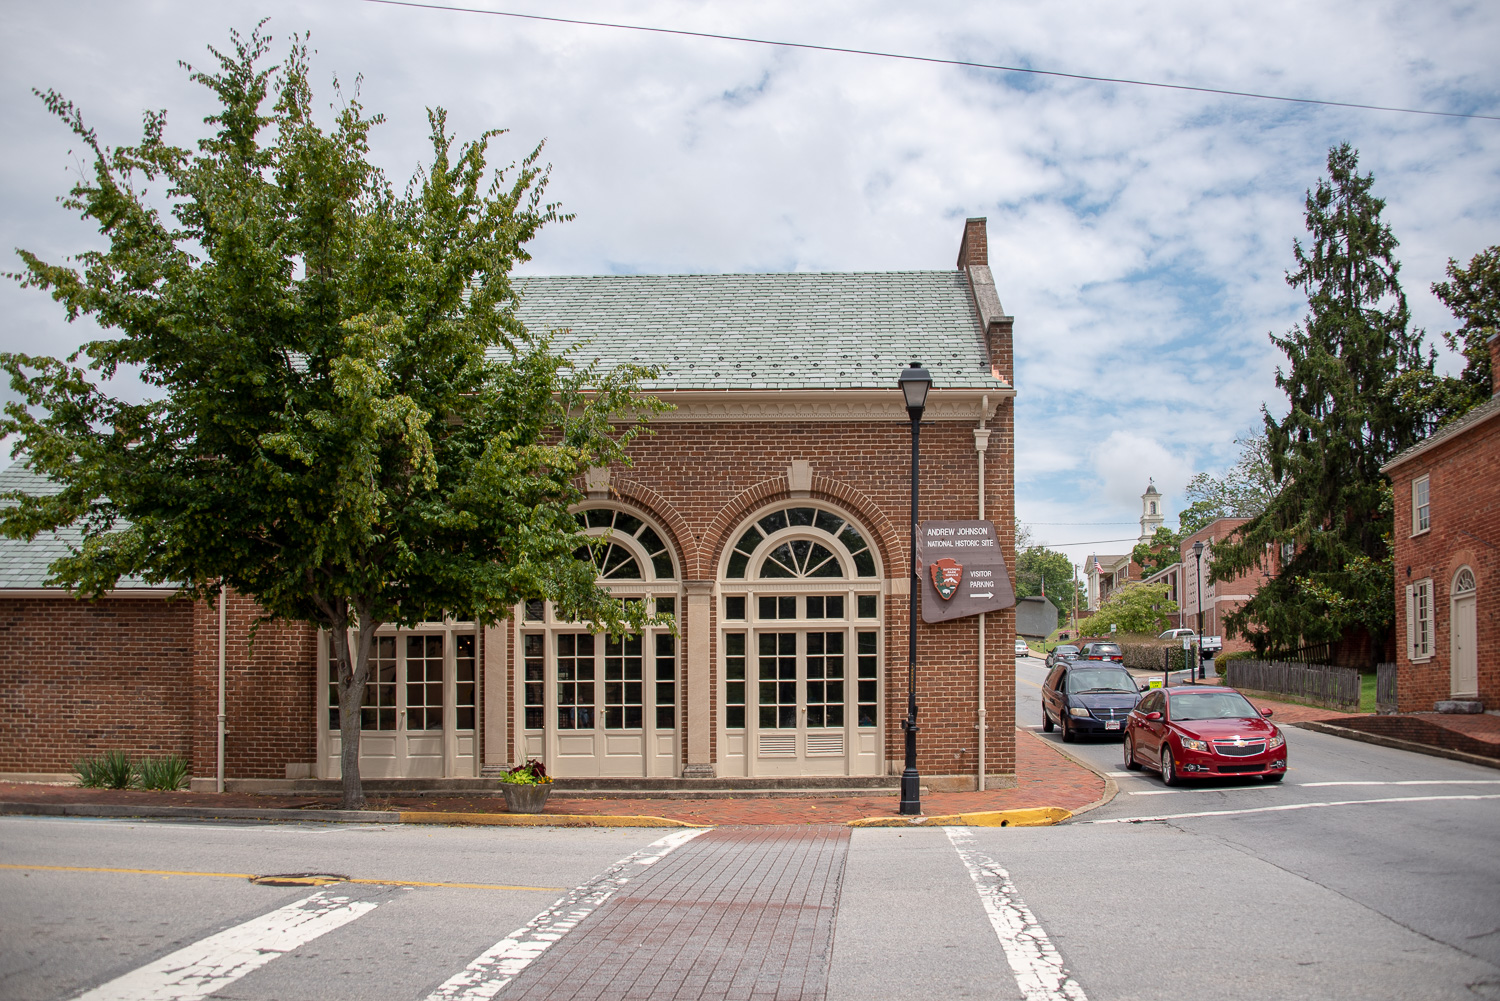 The Andrew Johnson NPS Visitor Center. Johnson's tailor shop is located just behind the large arched windows.